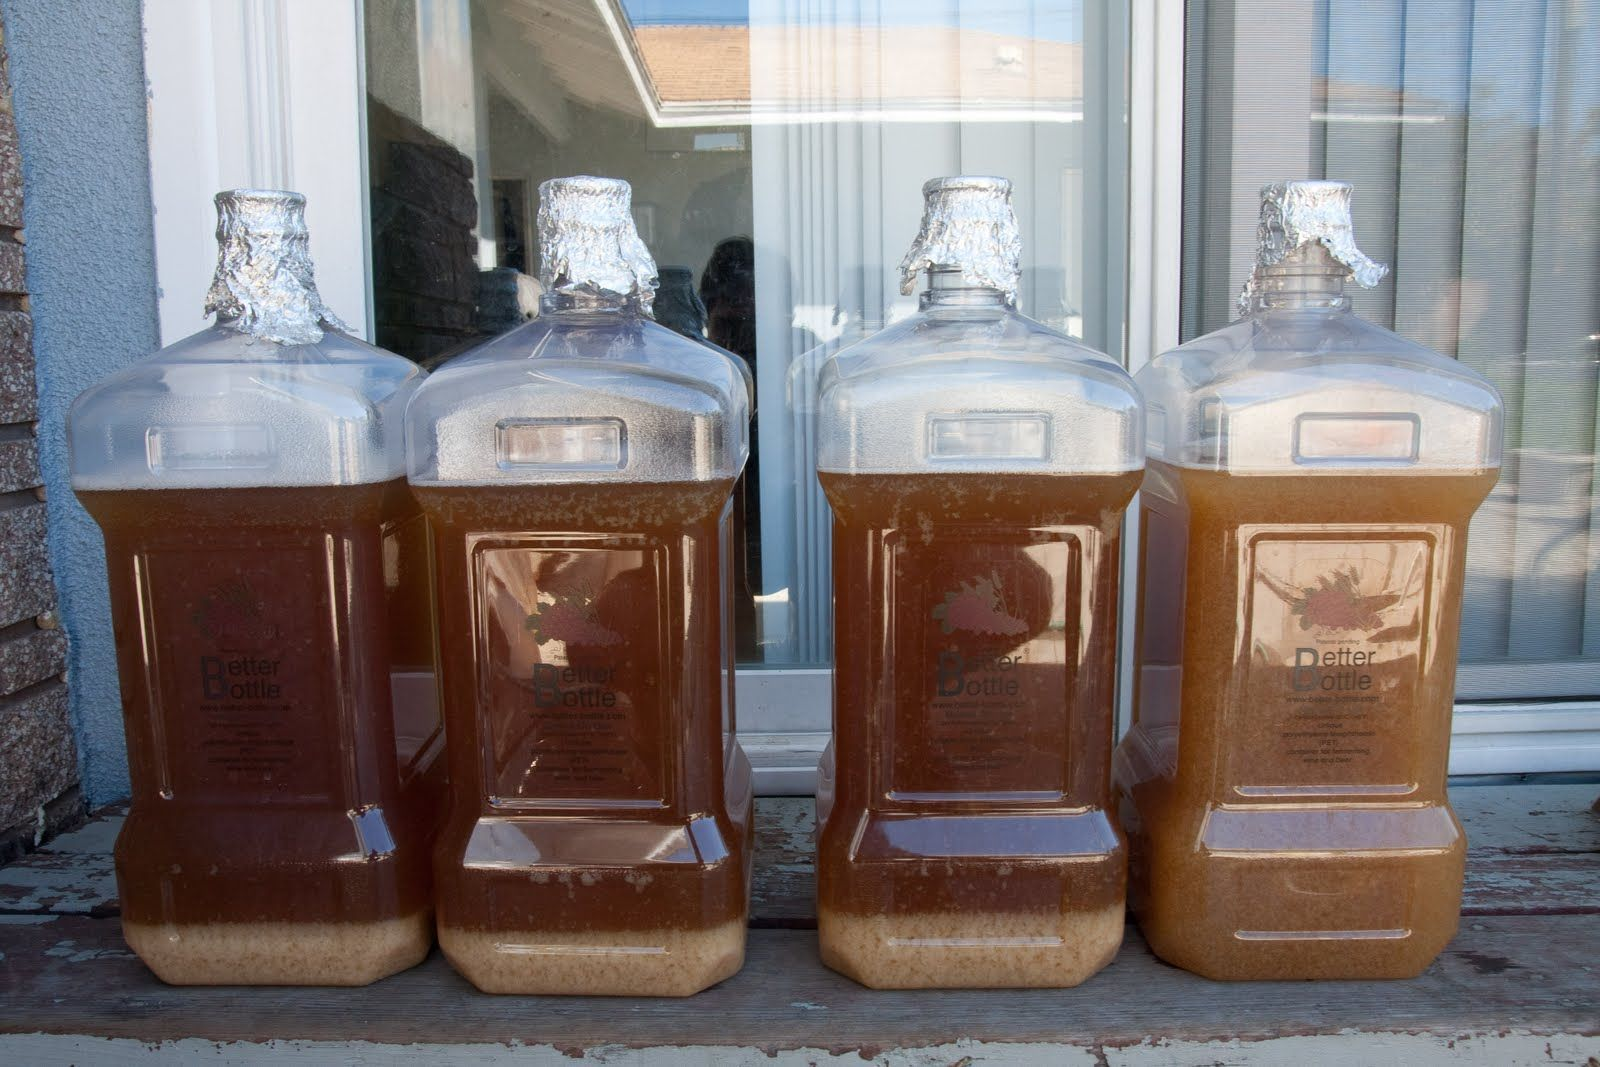 smallbatchbrewing | Brewing beer, one small batch at a time